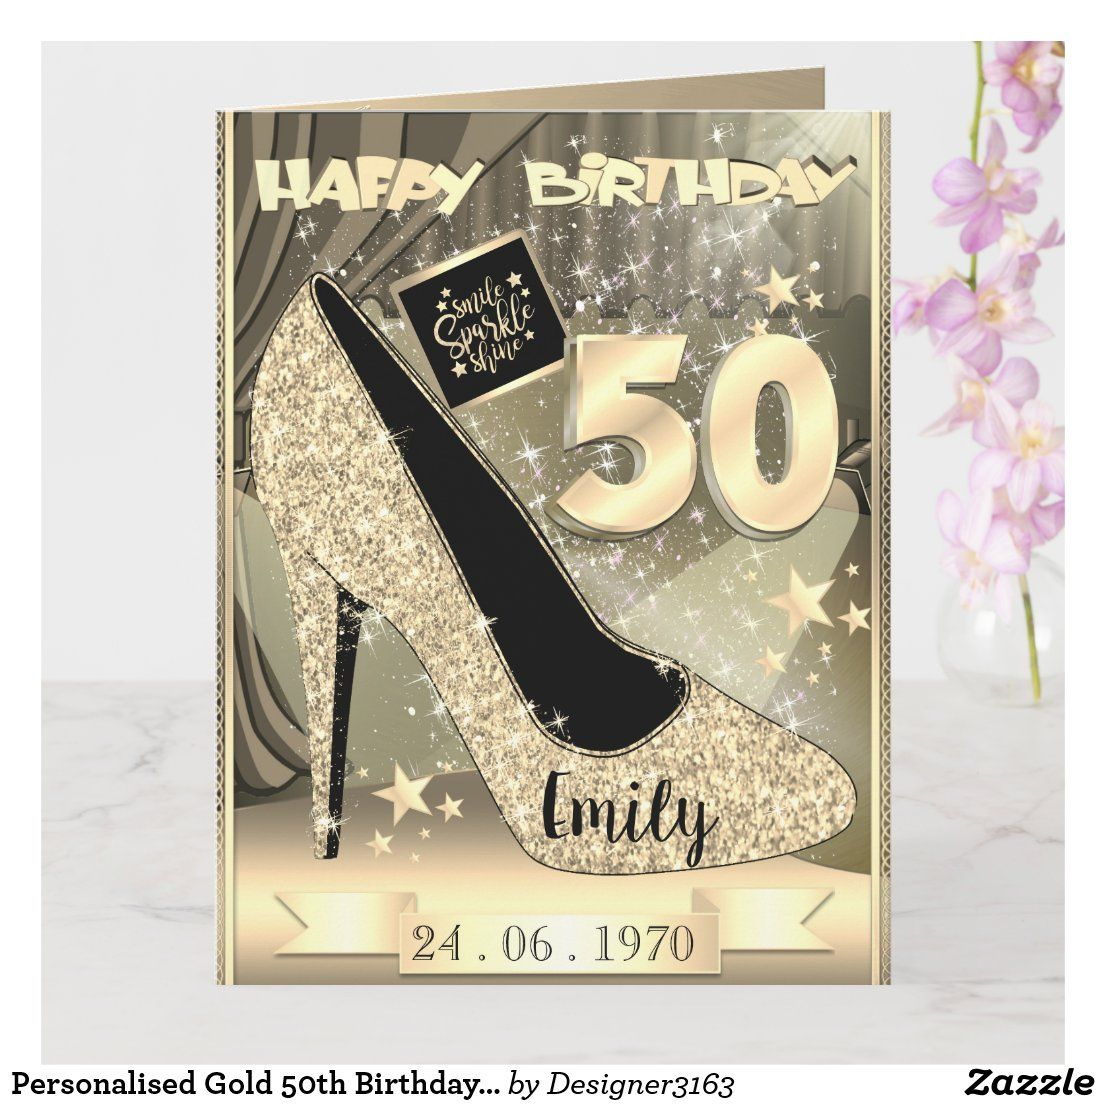 Personalised Gold 50th Birthday Card Idea For Her Zazzle Com In 2021 Birthday Cards For Women 50th Birthday Cards 50th Birthday Cards For Women